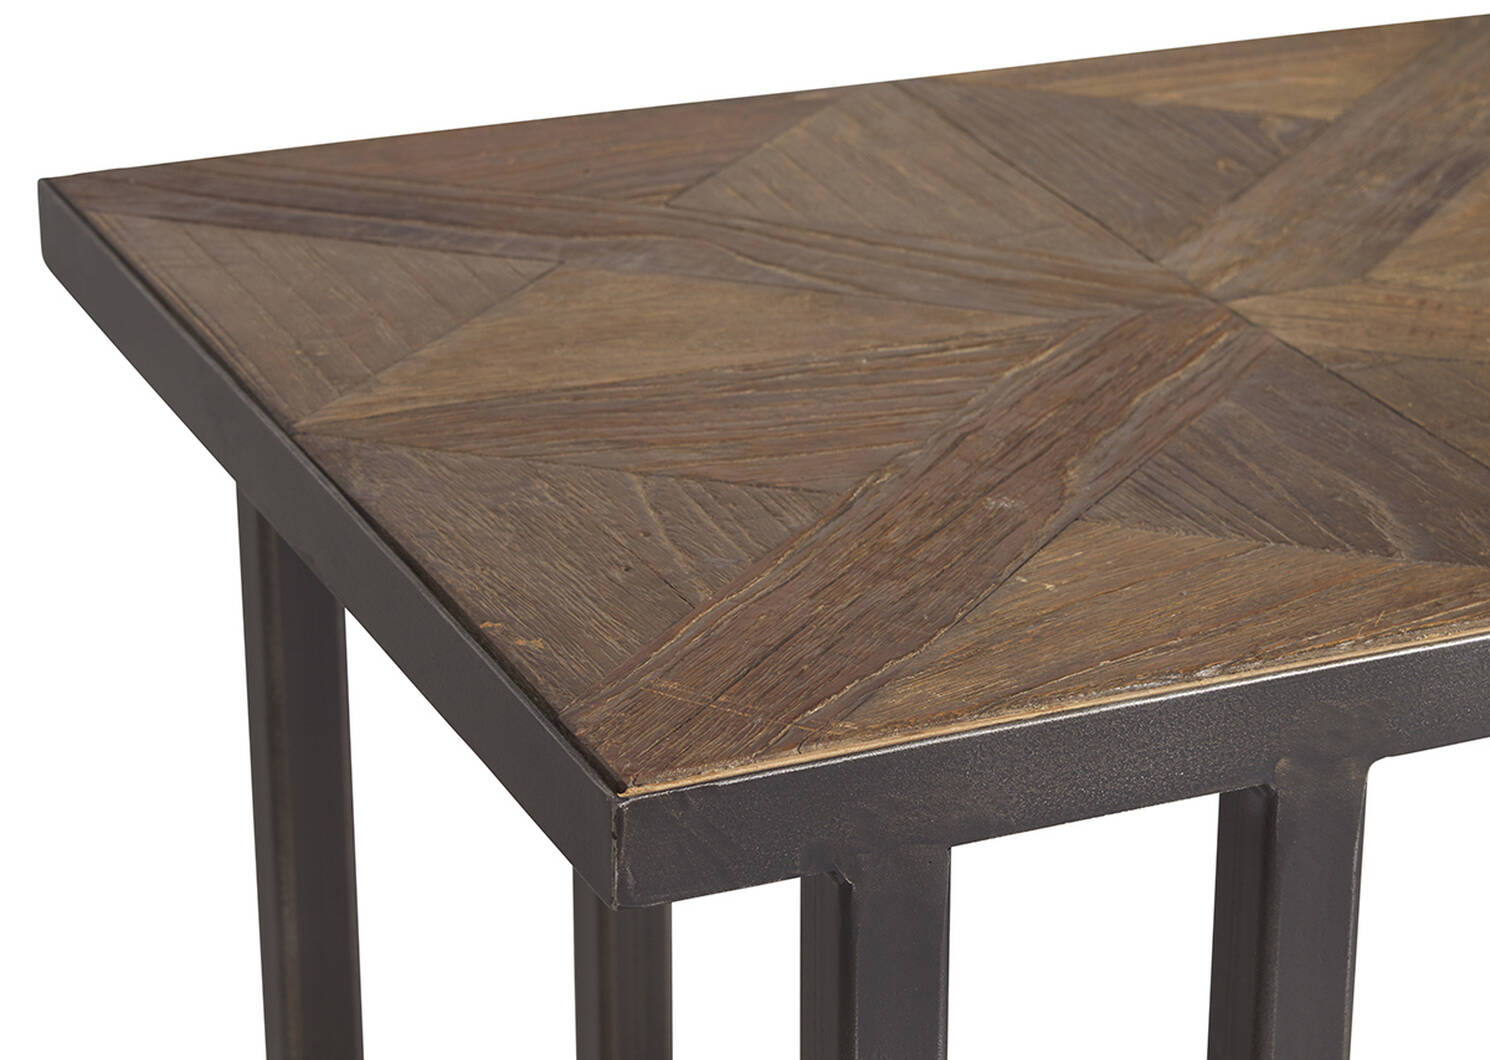 DeLaurier Tuck Table -Marques Black